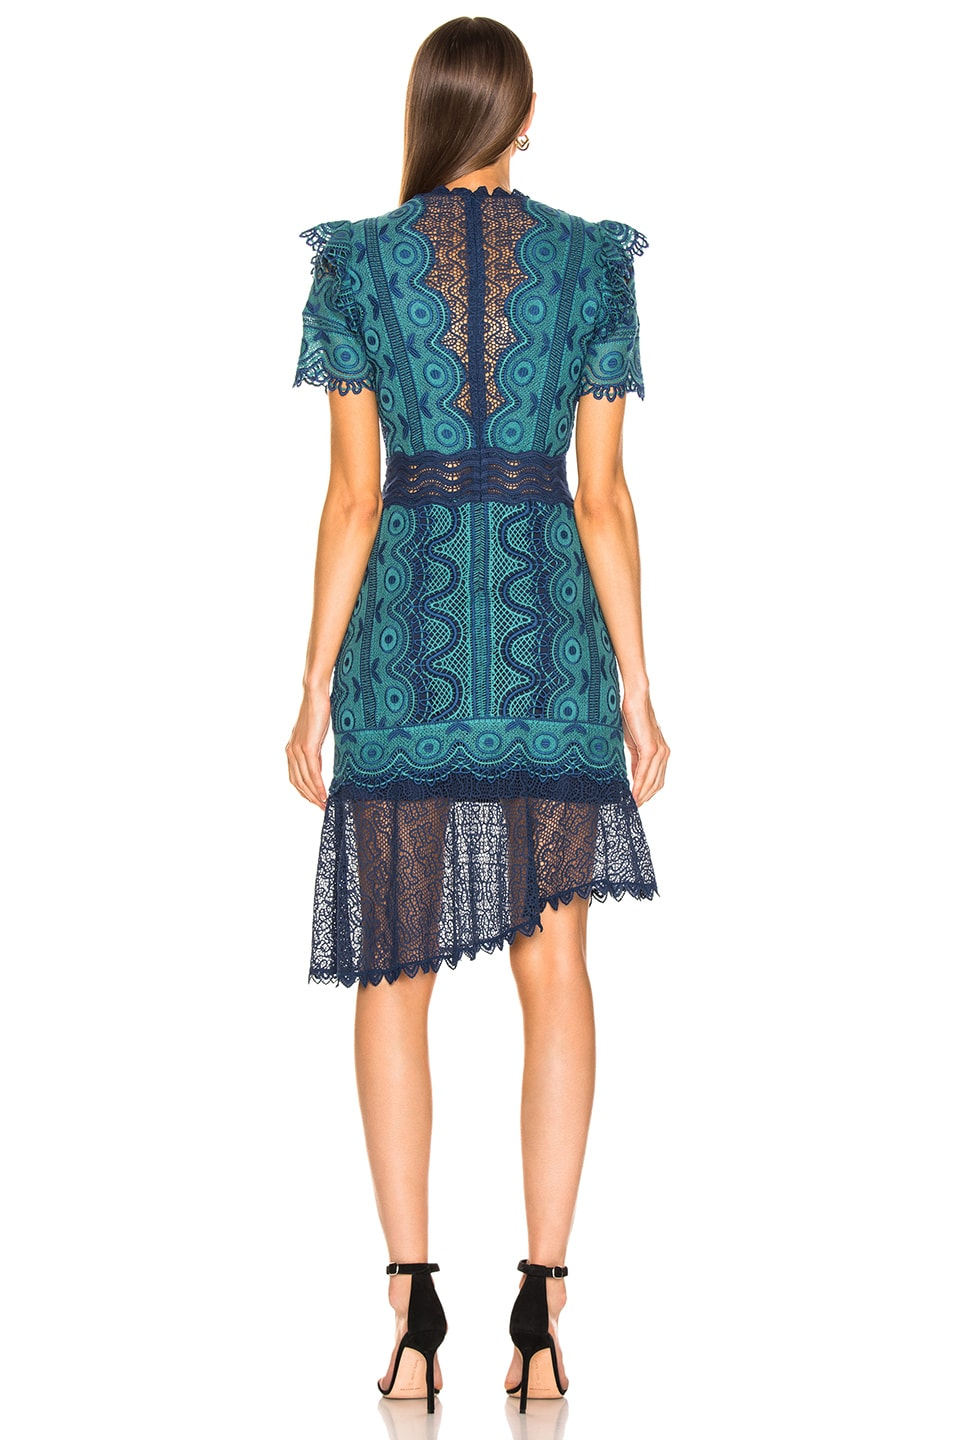 Image 4 of Sea Lola Lace Short Sleeve Dress in Teal Blue Multi